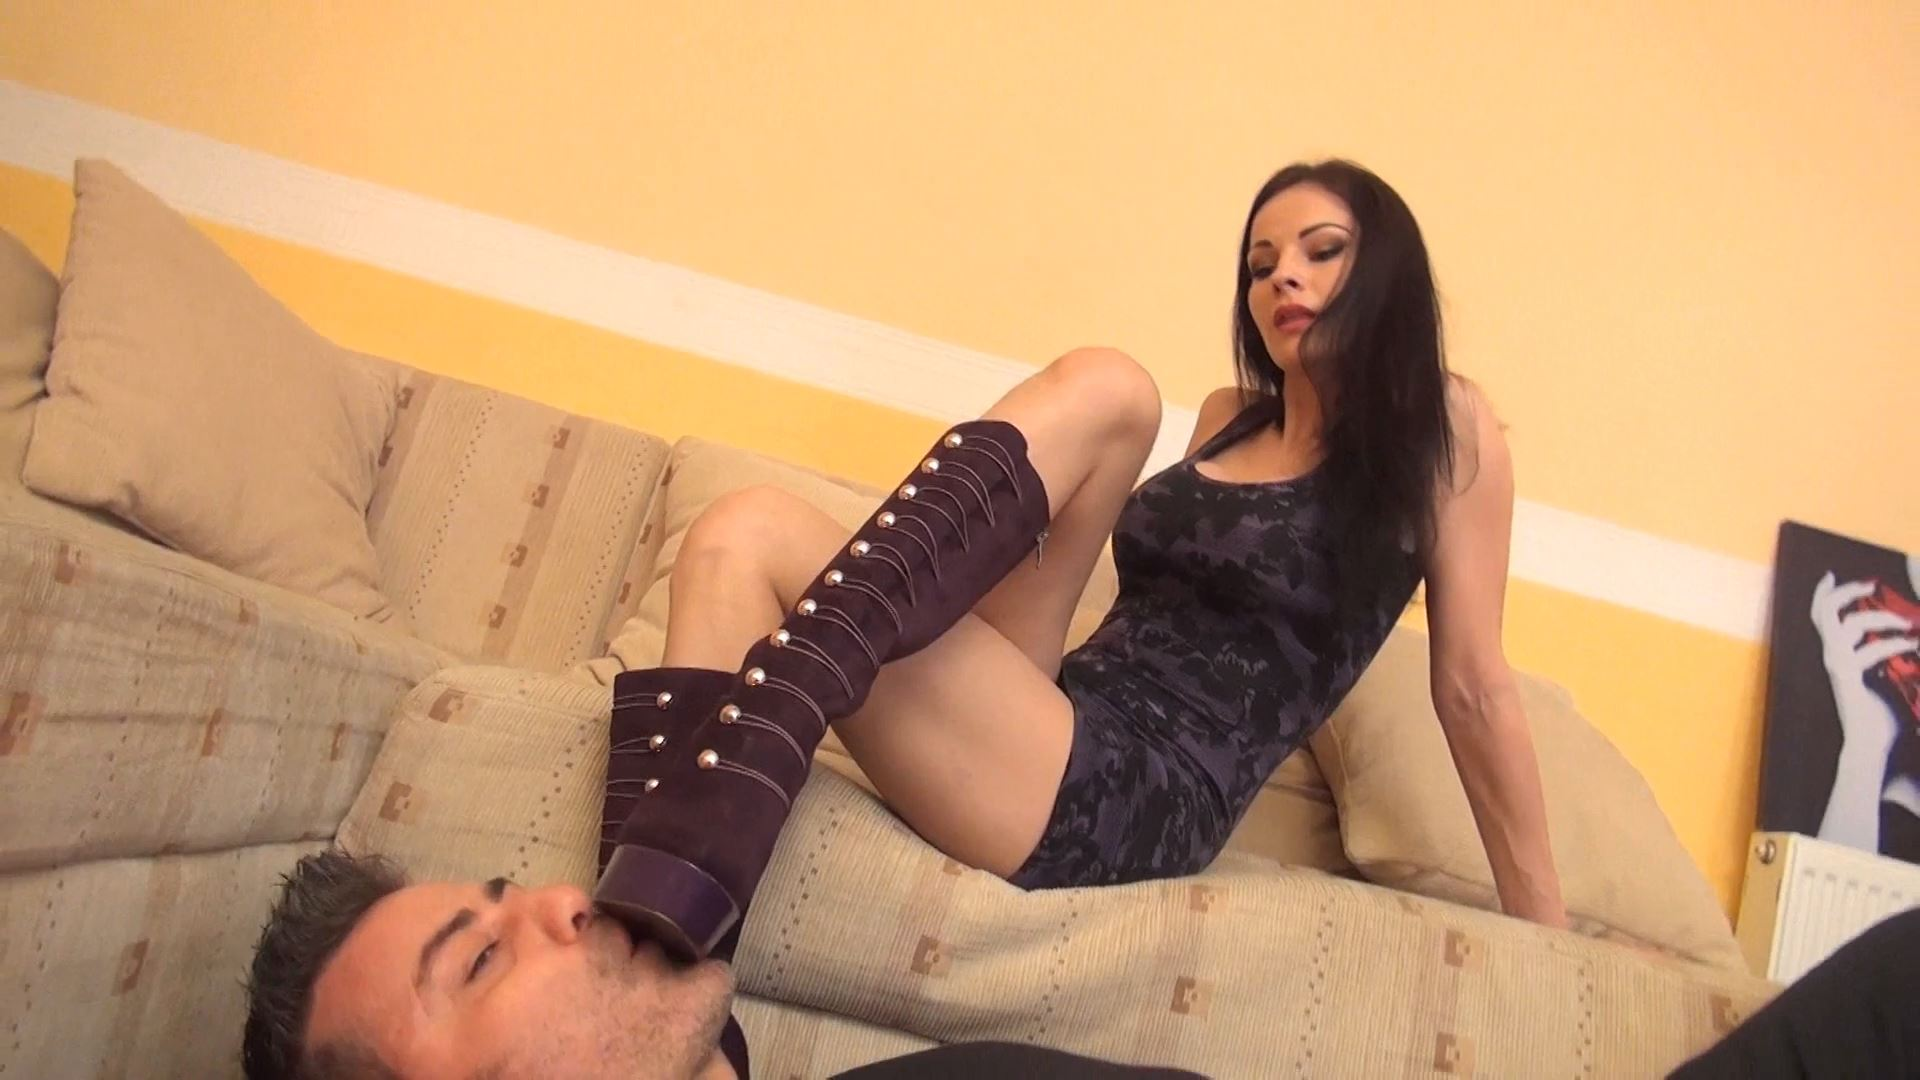 ABBIE CAT - WORSHIP MY FASHION BOOTS, SLAVE - BOOT DOMINATION PART 2 - FOOTDOMINAS - FULL HD/1080p/MP4